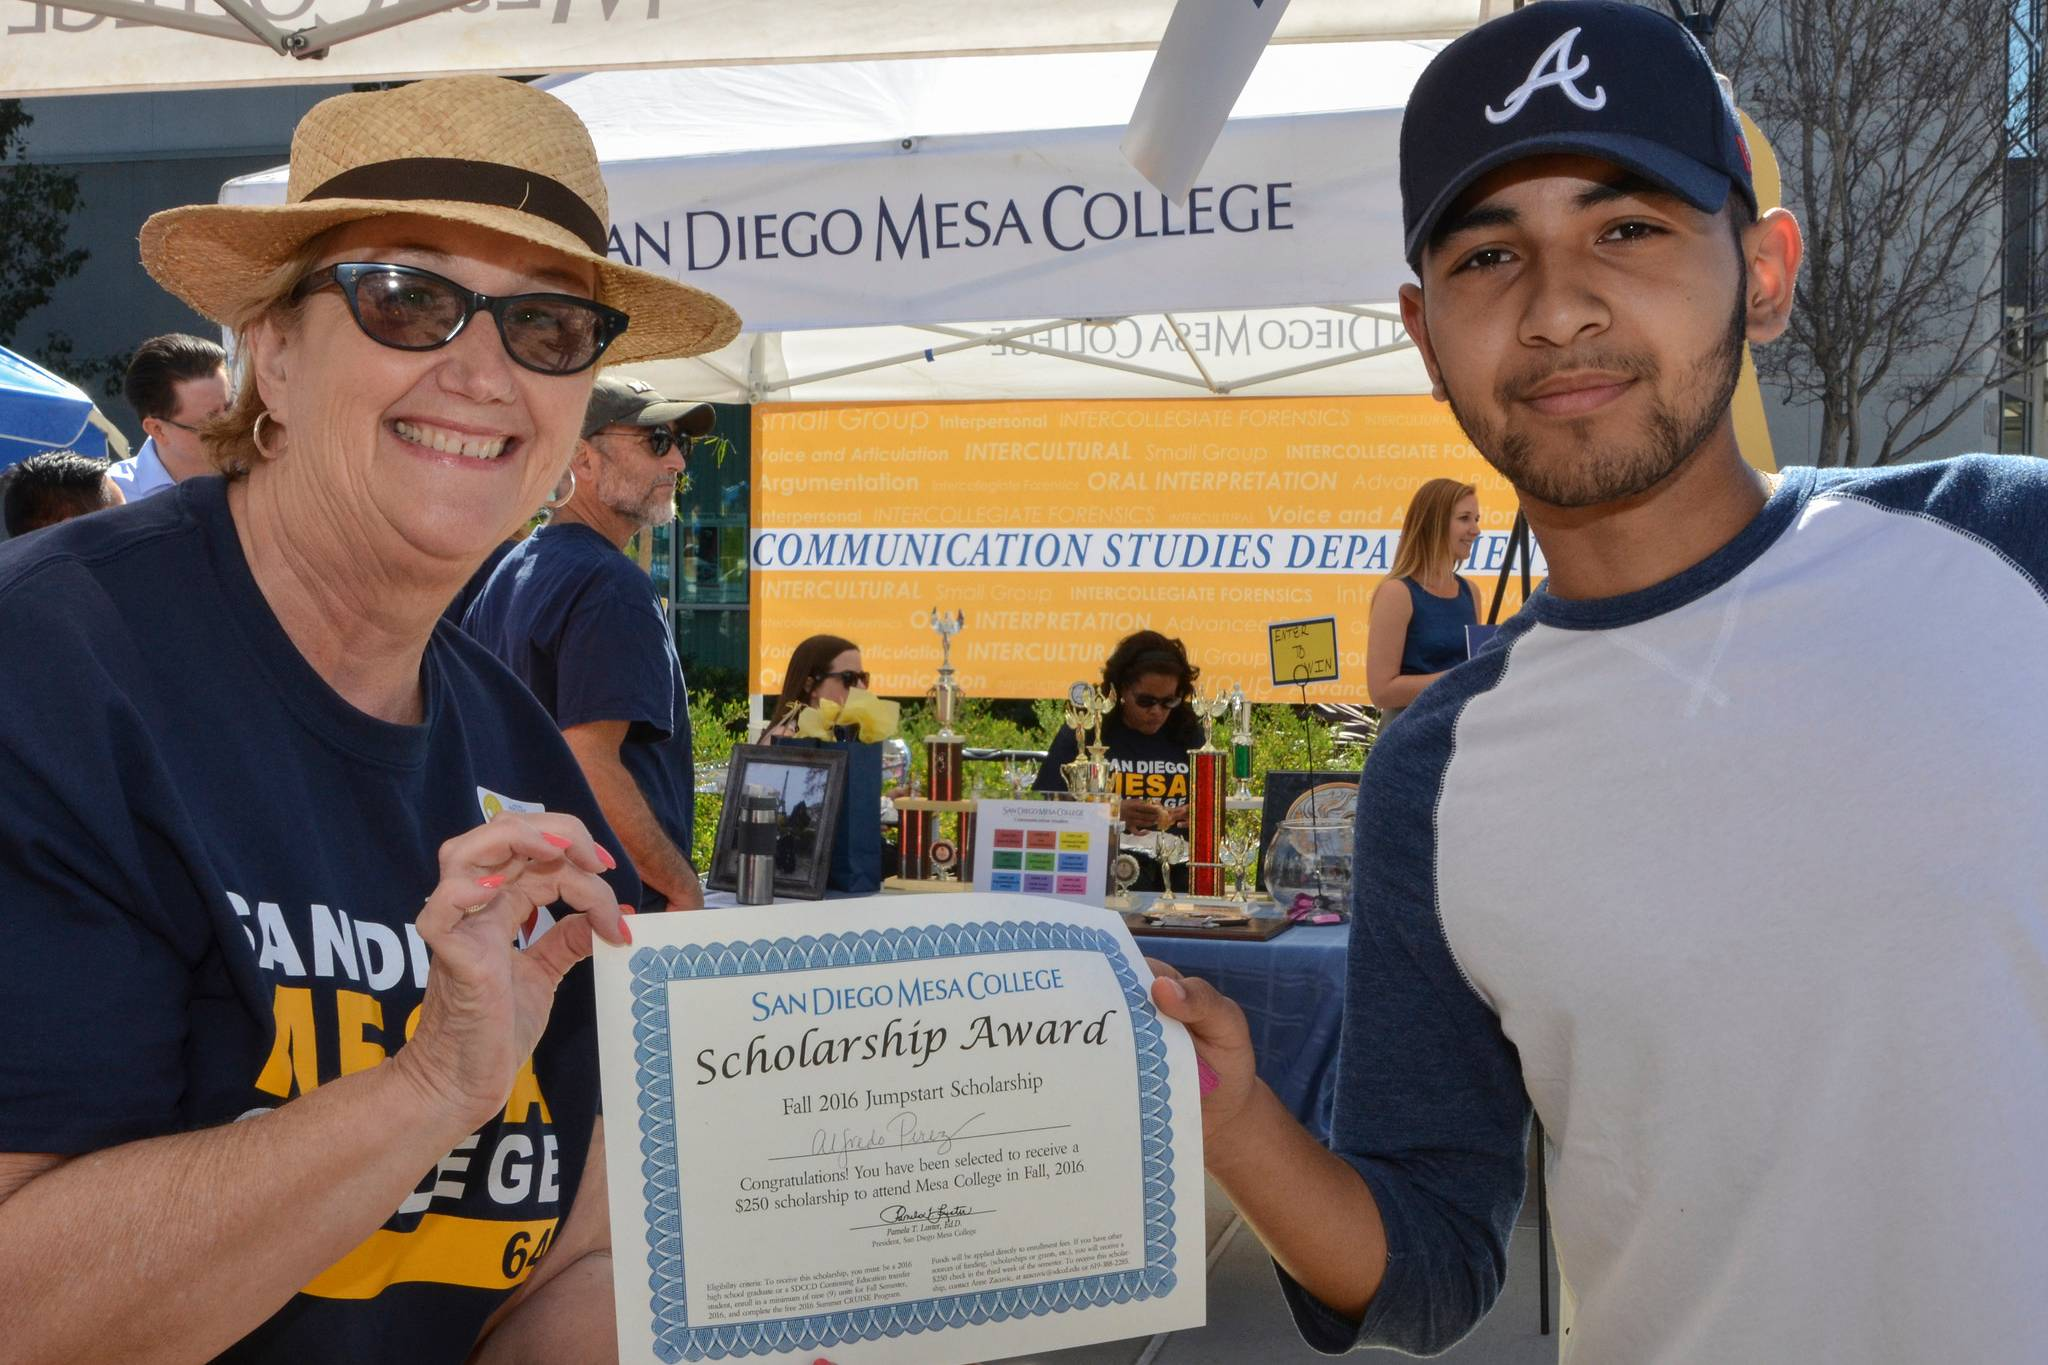 Students looking to attend San Diego Mesa College can get early access to the campus and learn about the school's programs and amenities during the annual Jumpstart on Feb. 25 from 8:30 a.m. to 1 p.m.